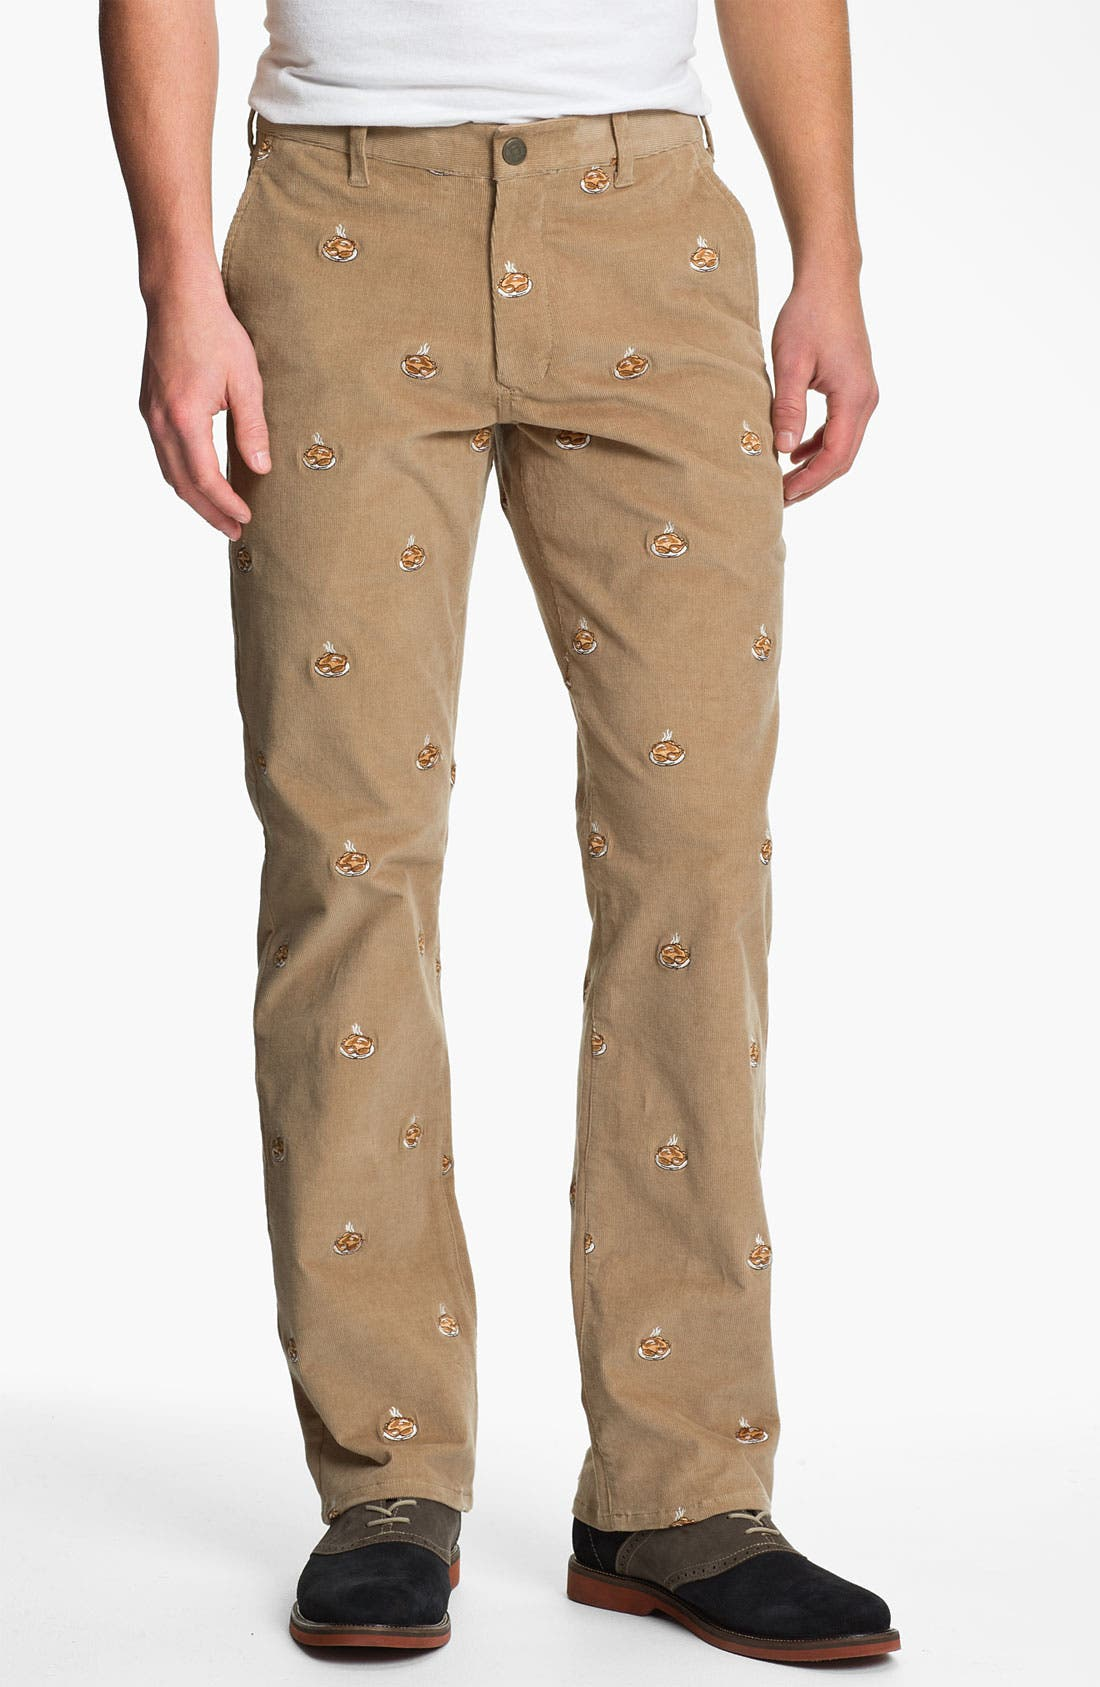 BONOBOS 'Cooked Turkeys' Corduroy Pants, Main, color, 250